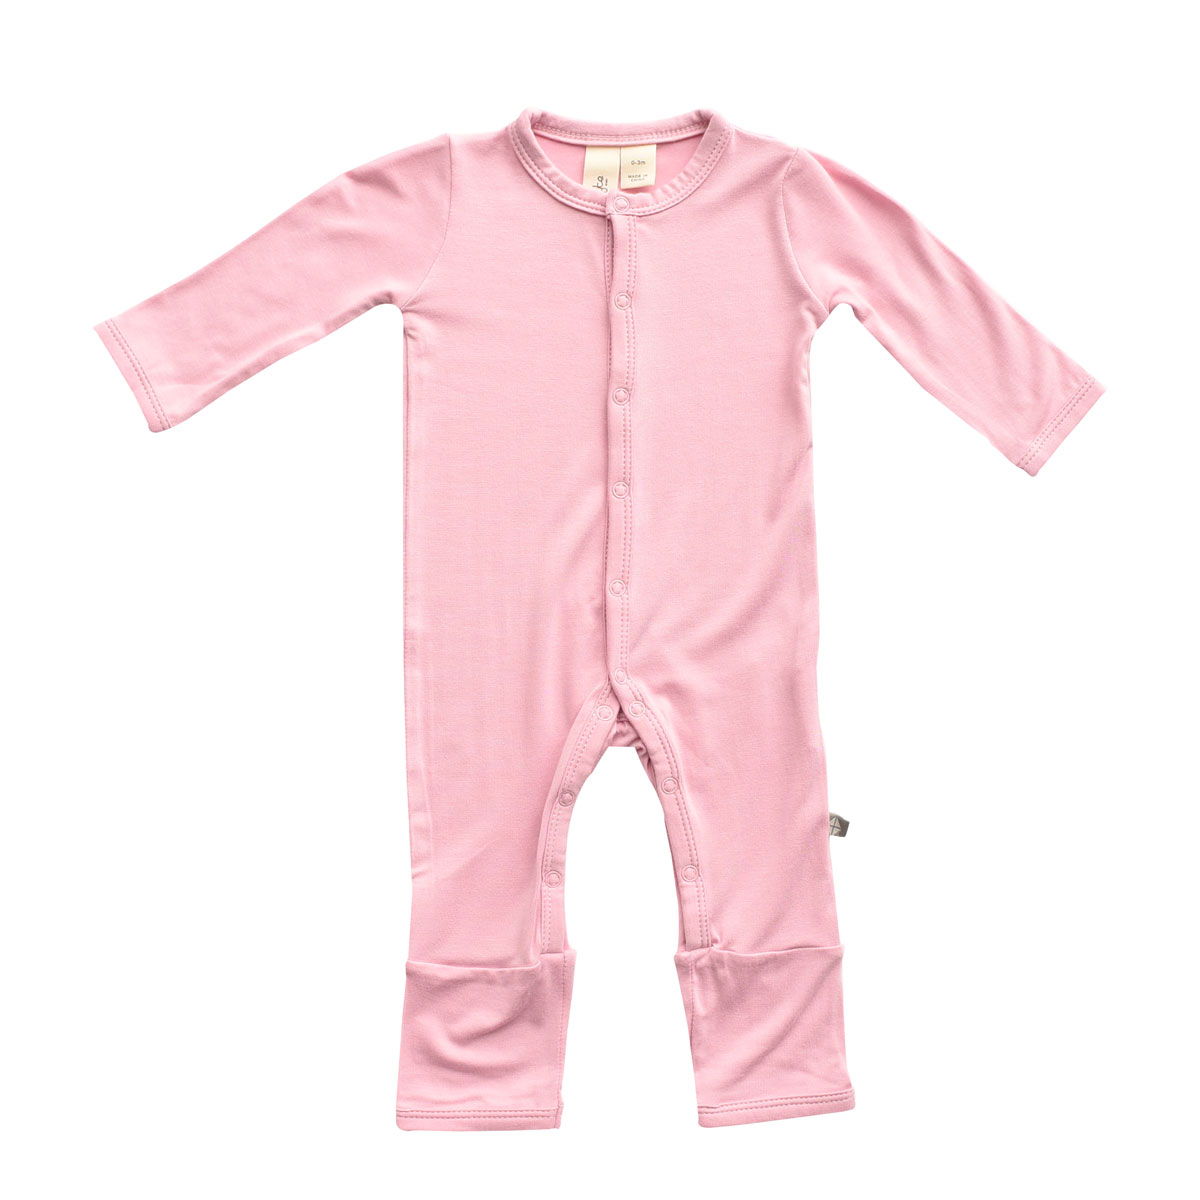 Kyte Baby Bamboo Solid Footless Romper in Dusk Pink